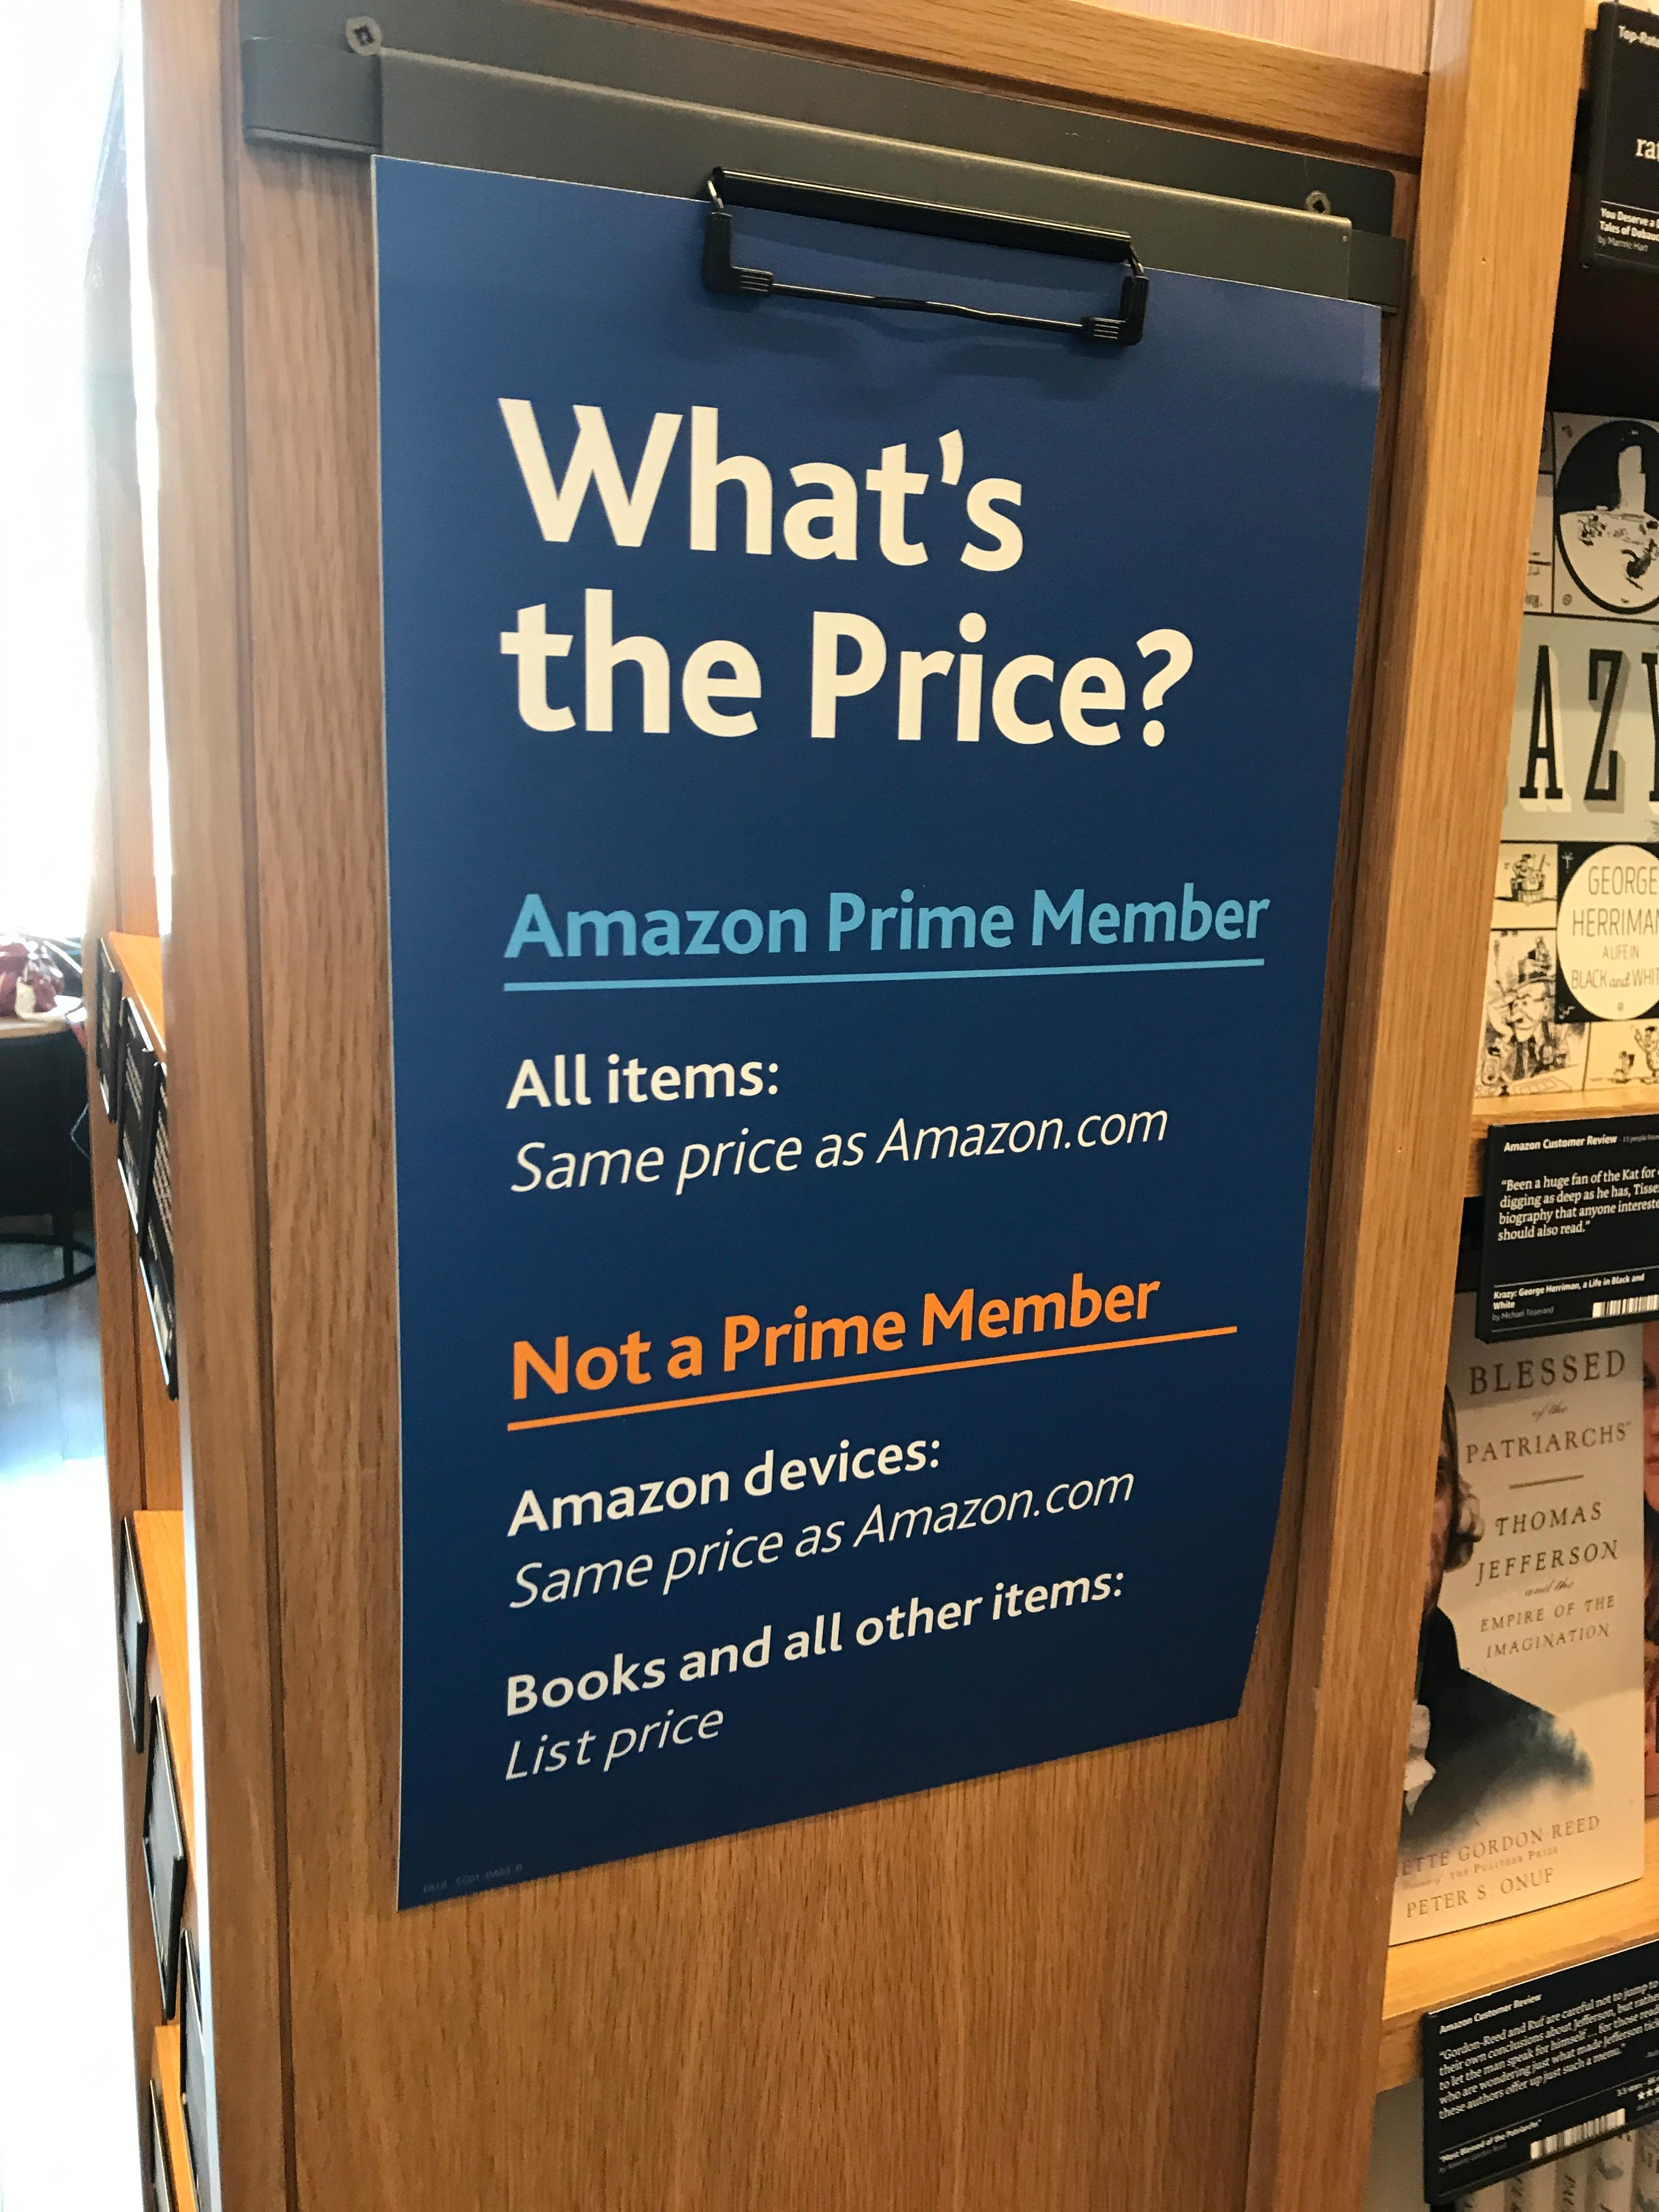 amazon-influence-brick-and-mortar-pet-store-3.jpg